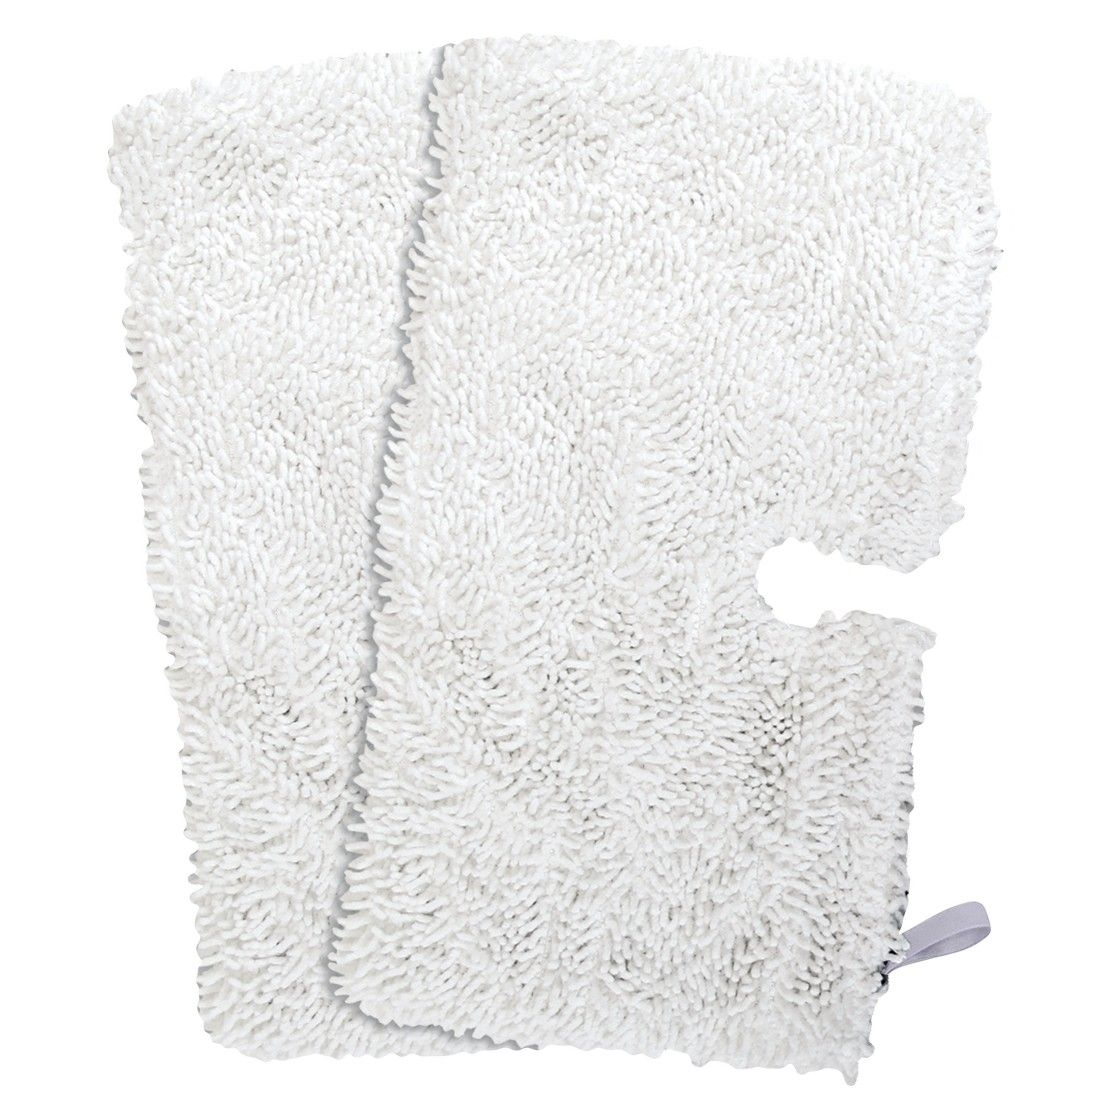 EnviroCare Replacement Cleaning Pads designed for Shark Steam Pocket Mops 2 count